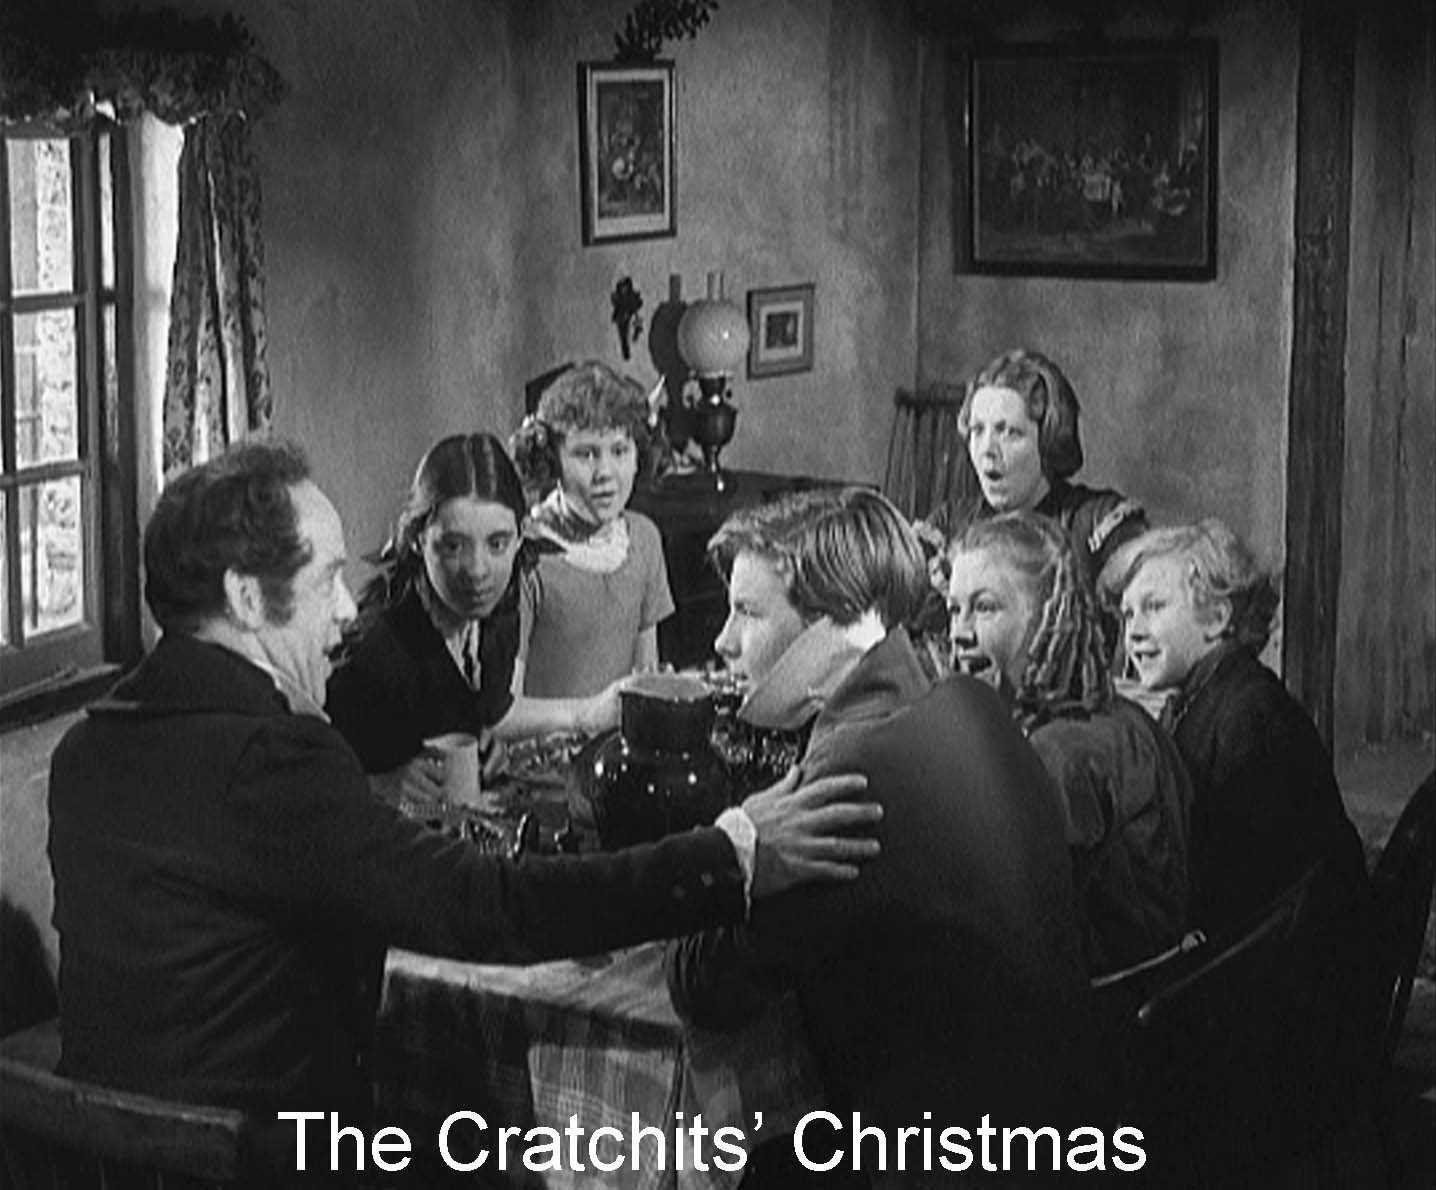 The Cratchits' Christmas